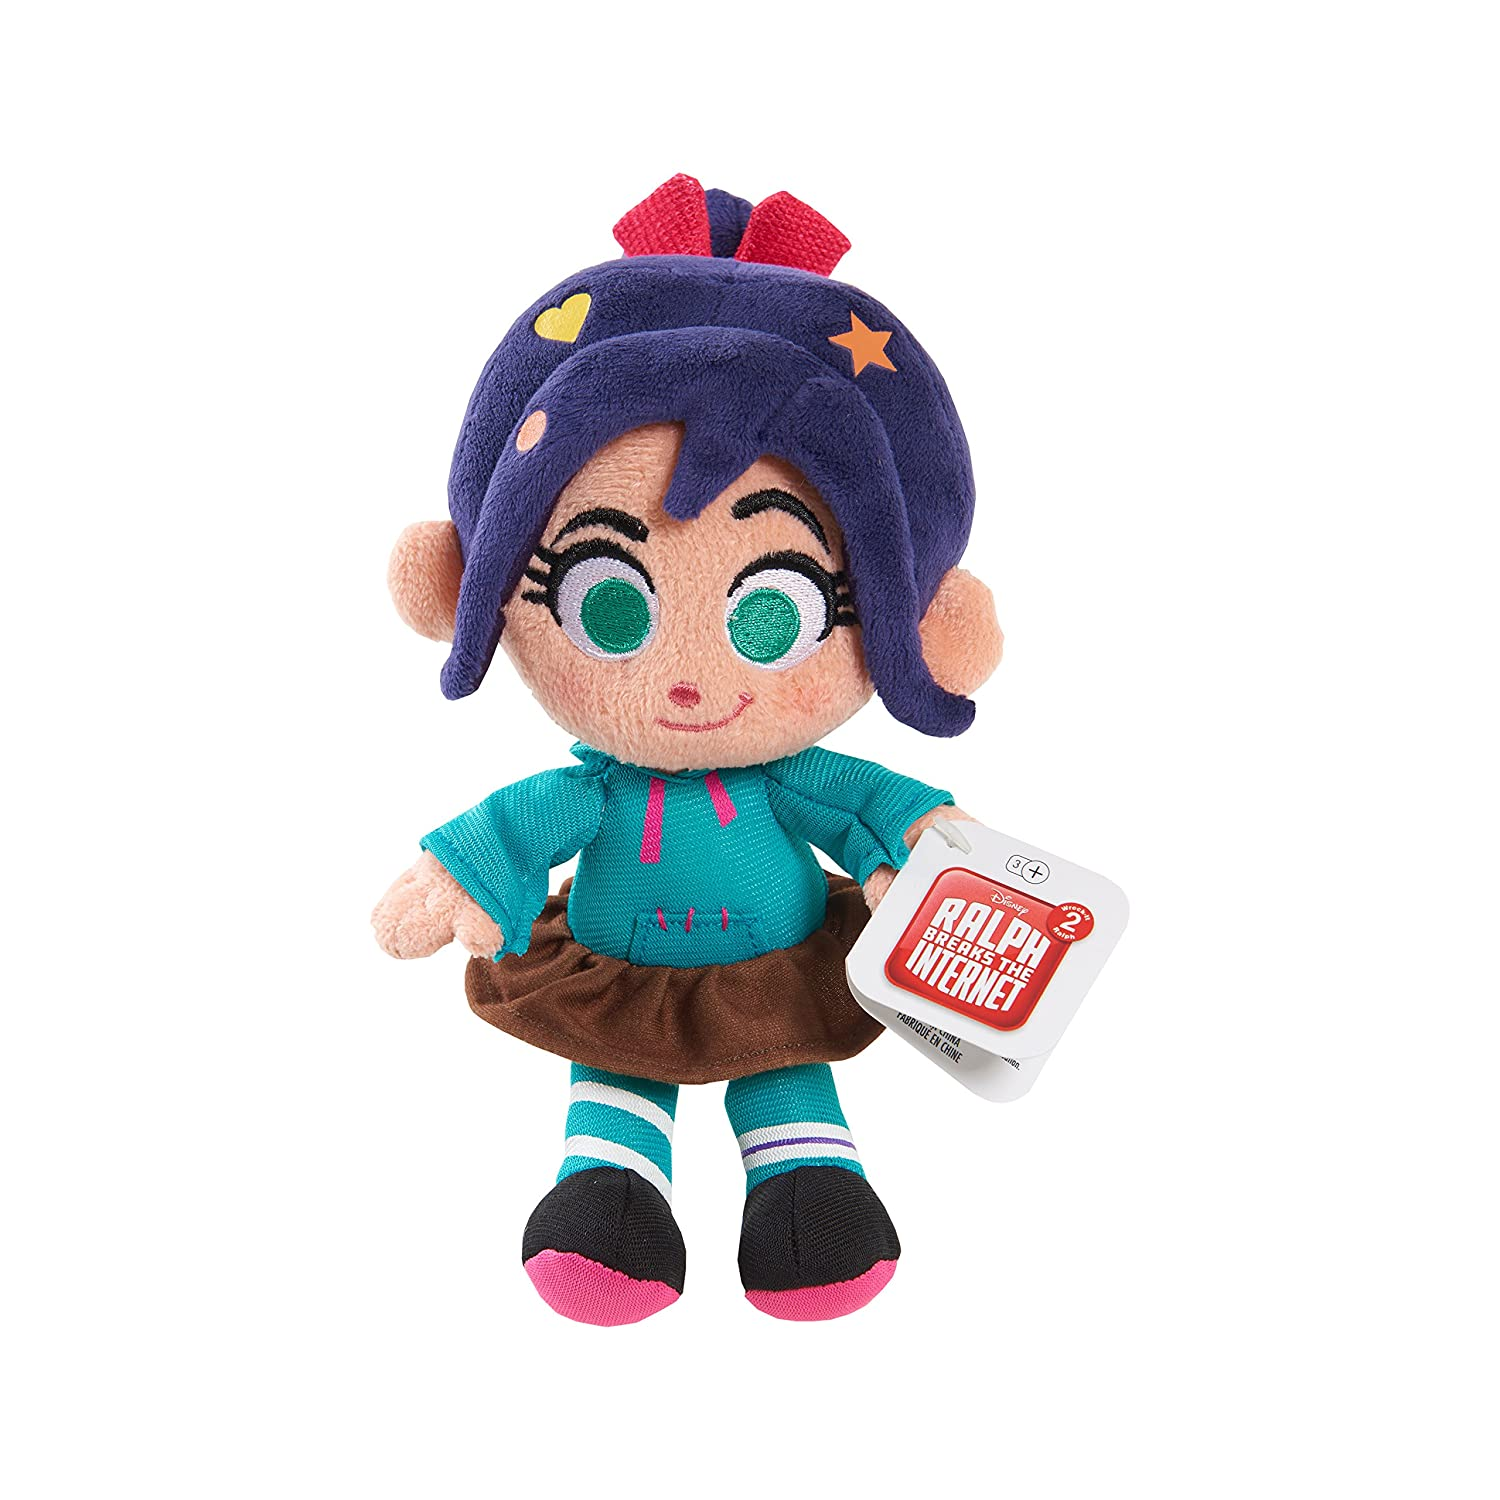 Wreck-It Ralph 8 Bean Plush - Vanellope Just Play 12520